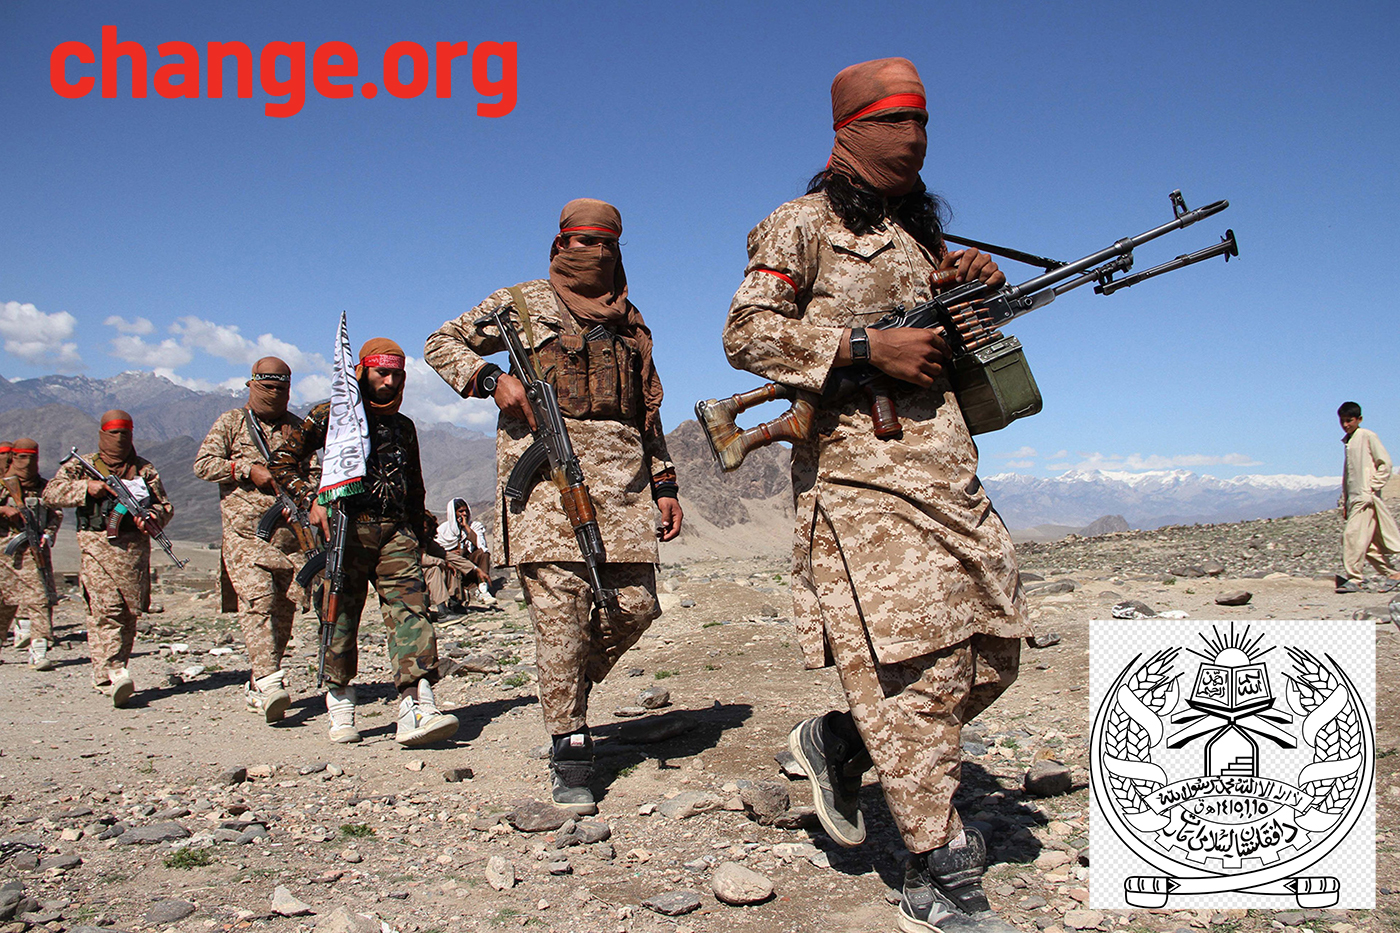 Taliban Cuts The Shit And Become Cool Guys After Change.org Petition Reaches 1 Million Signatures